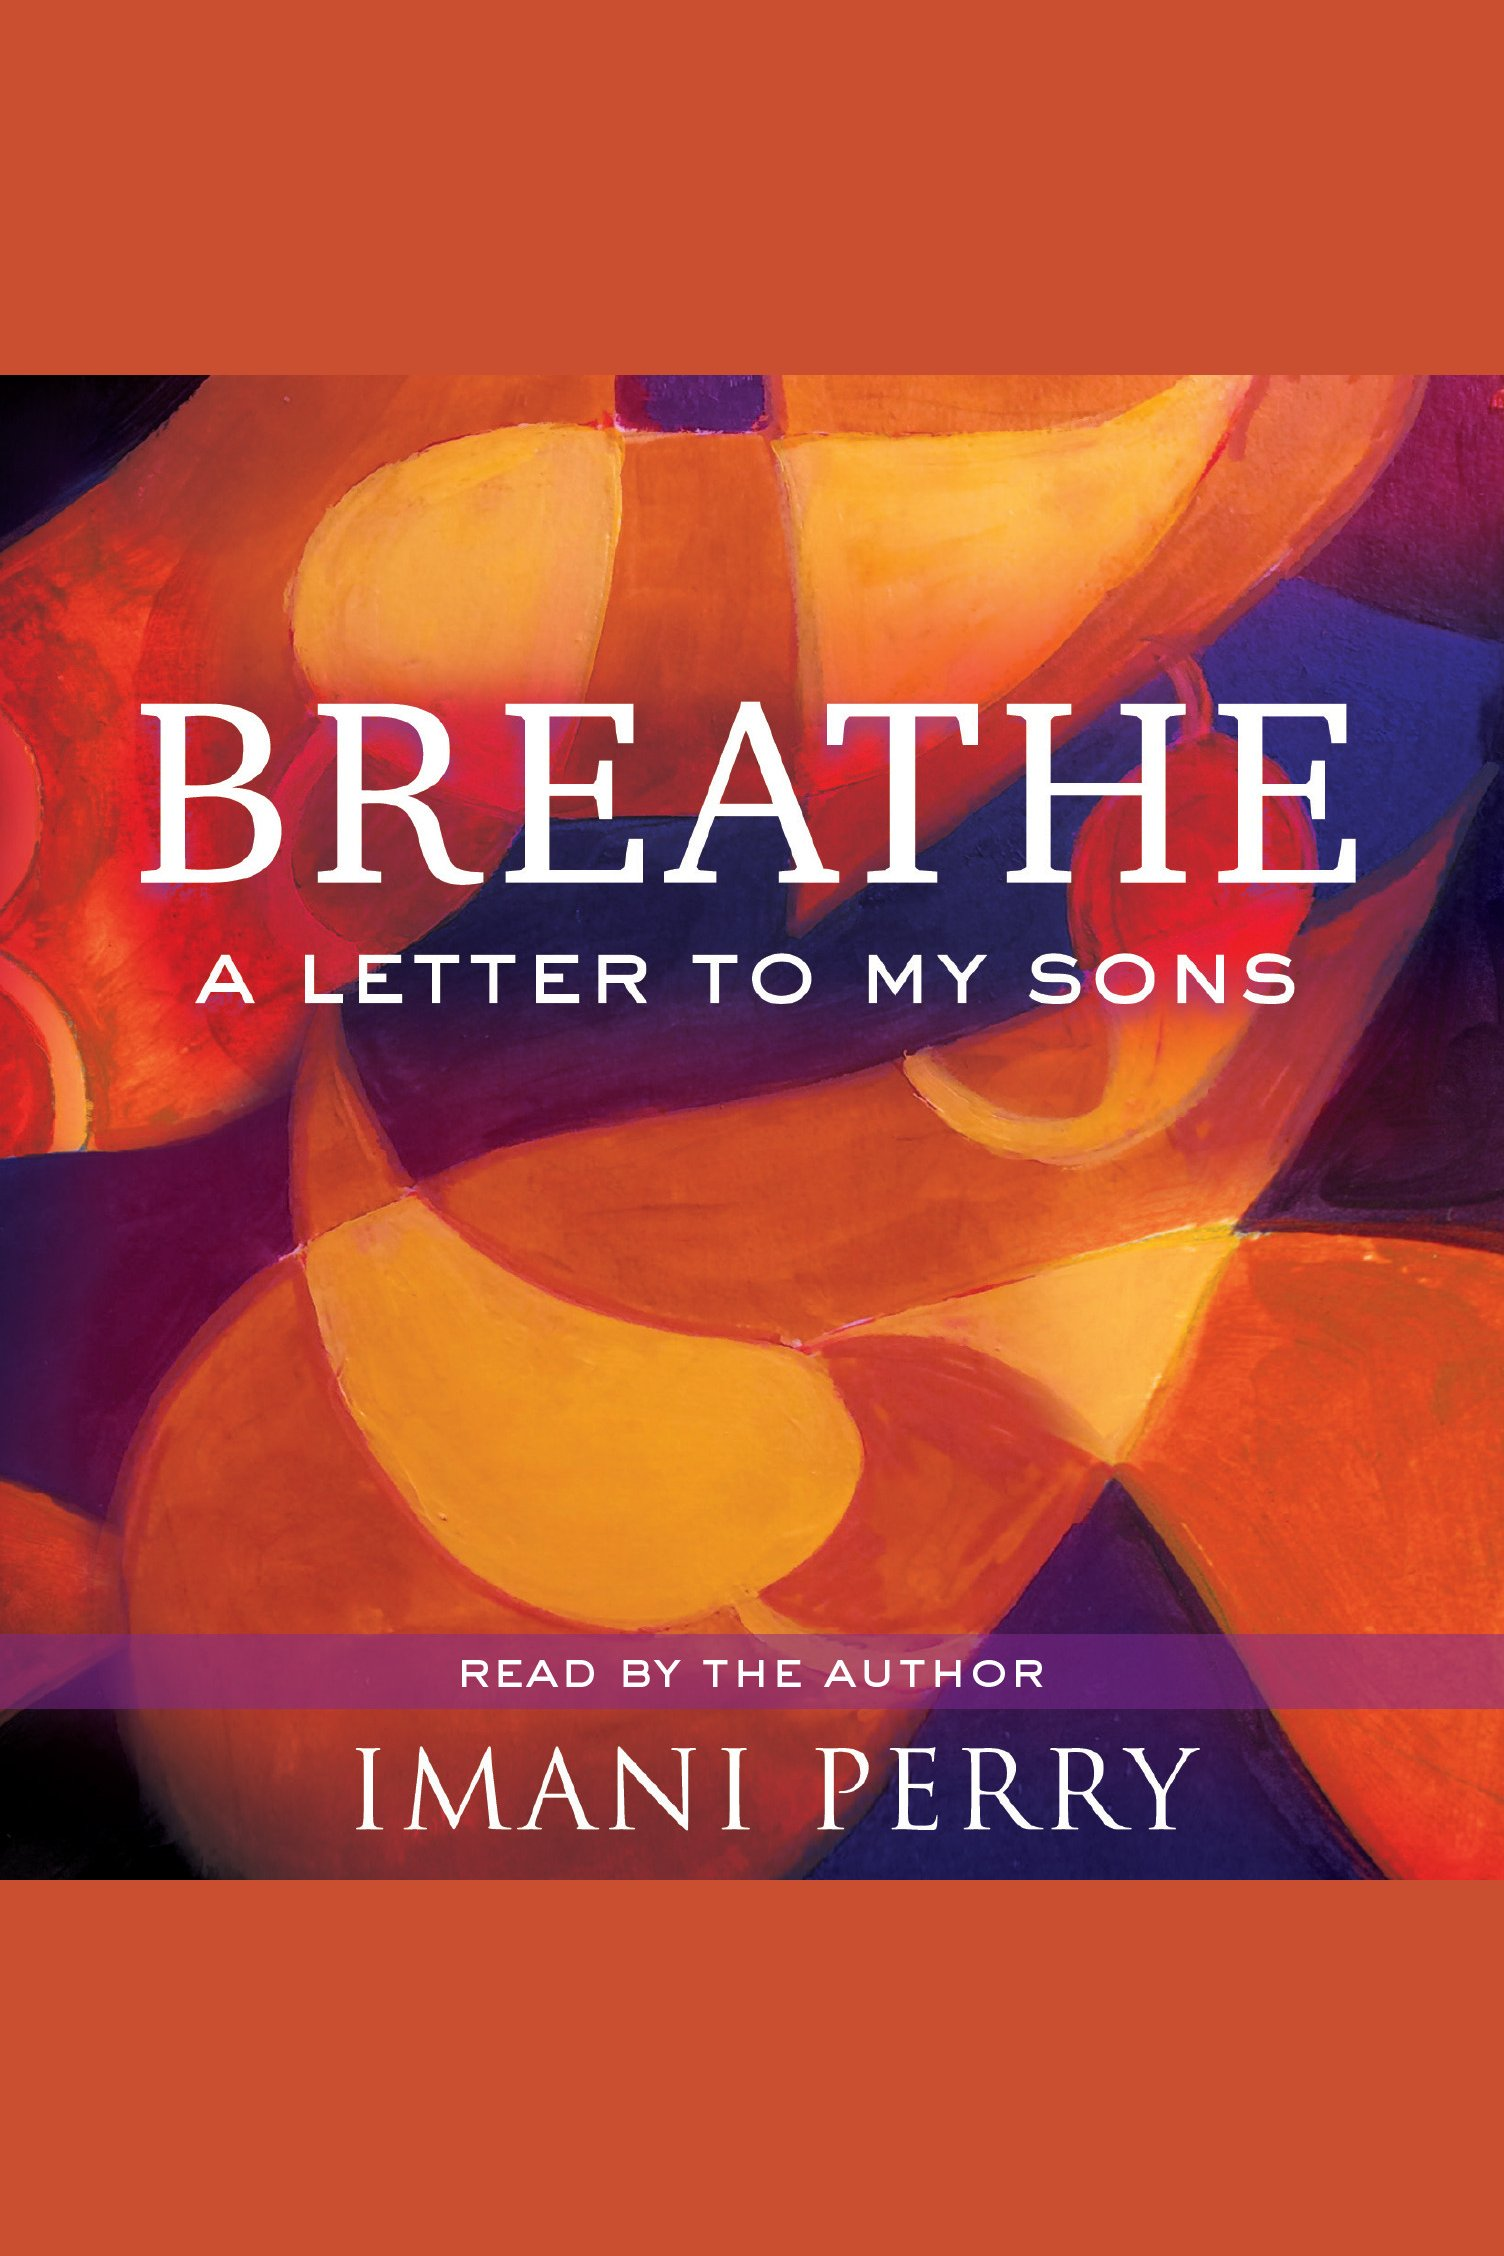 Breathe A Letter to My Sons